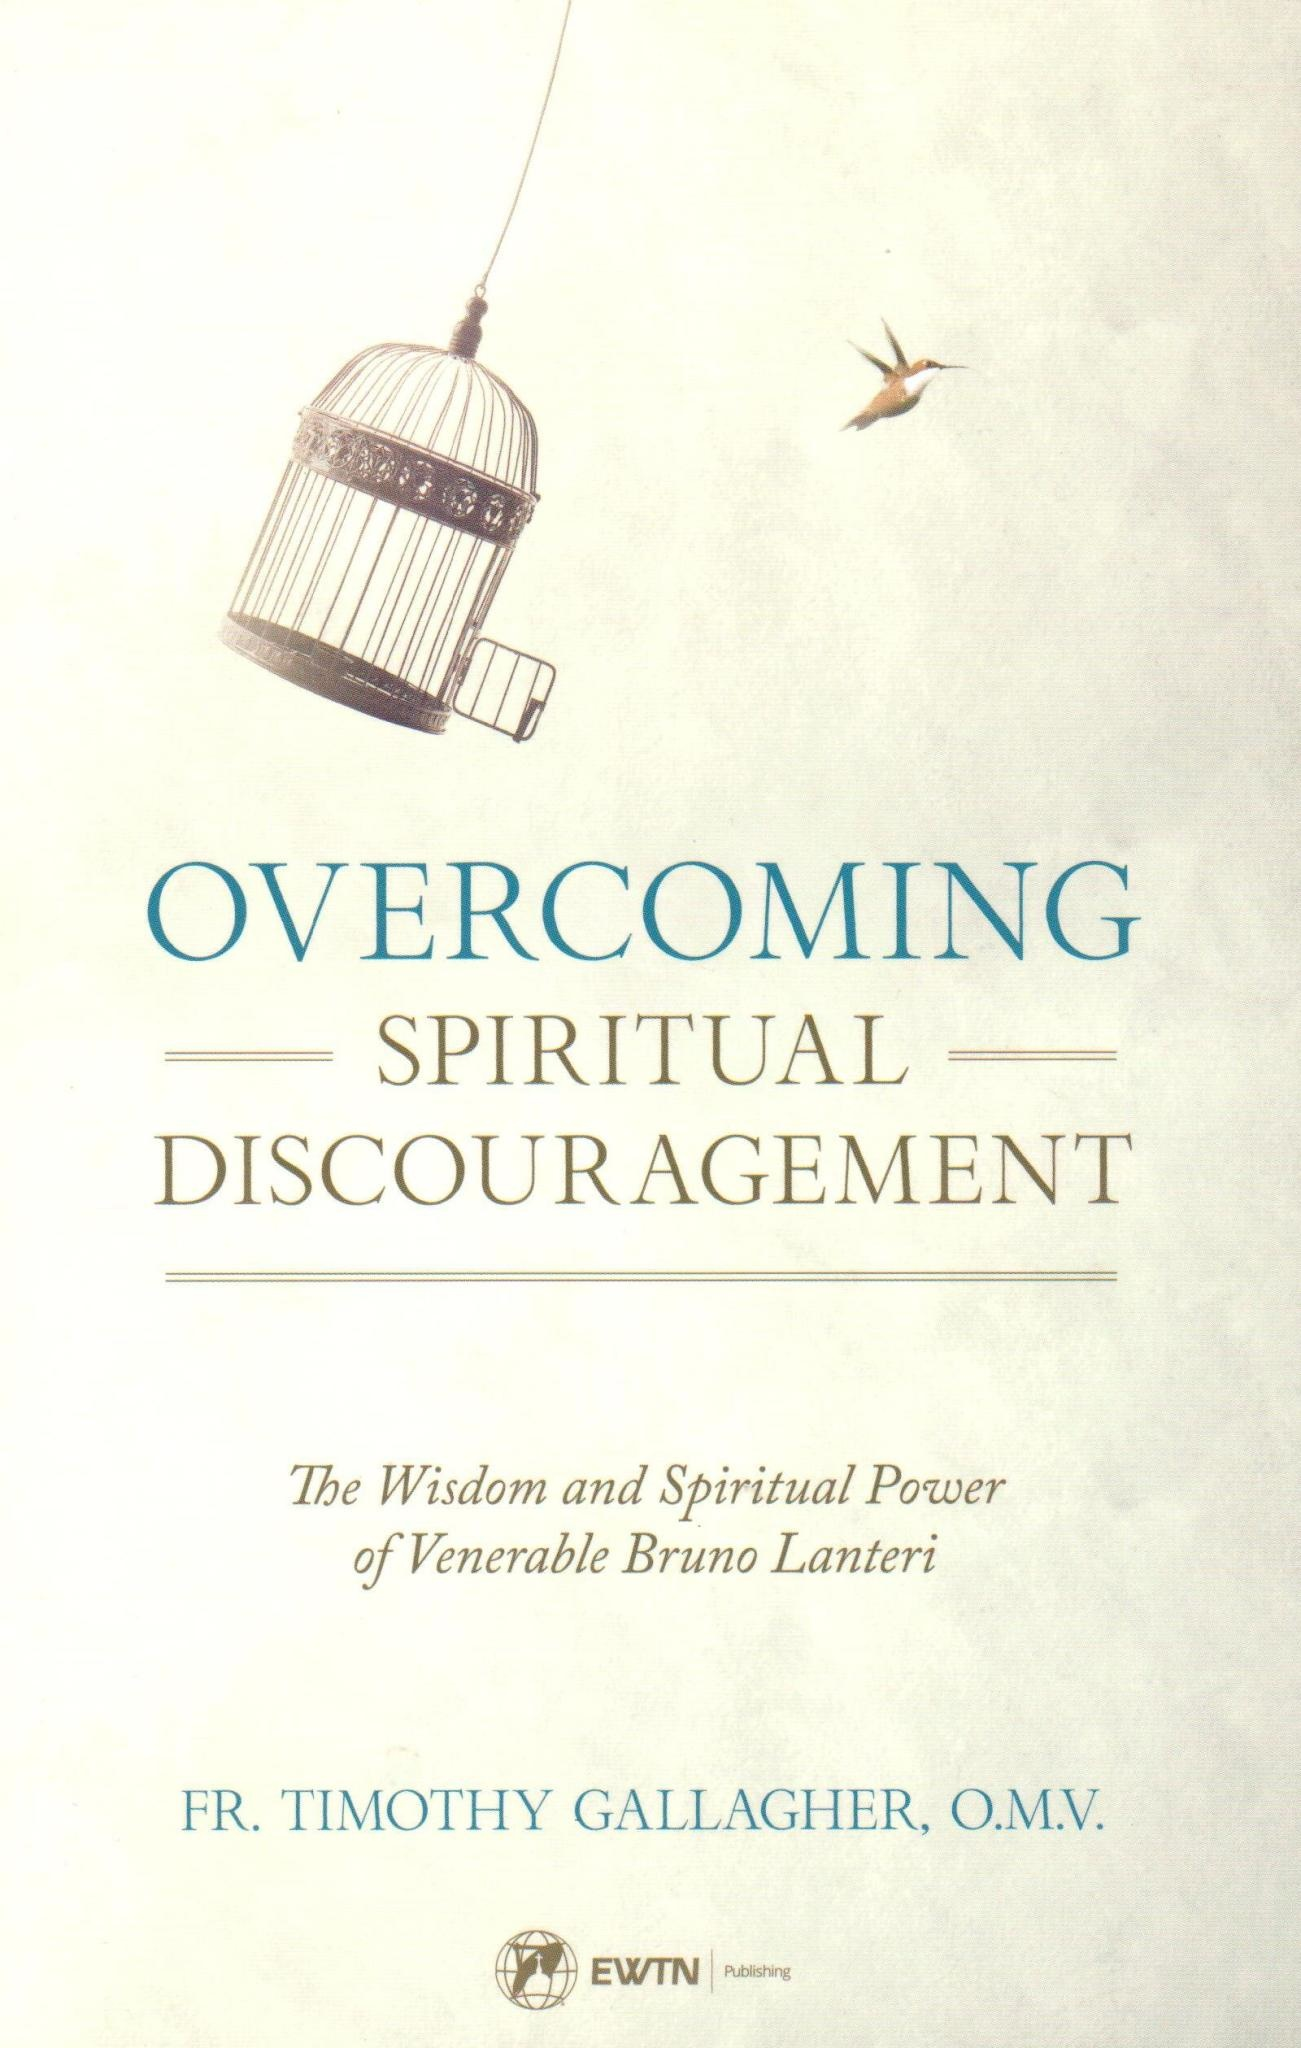 Overcoming Spiritual Discouragement: The Spiritual Teachings of Venerable Bruno Lanteri